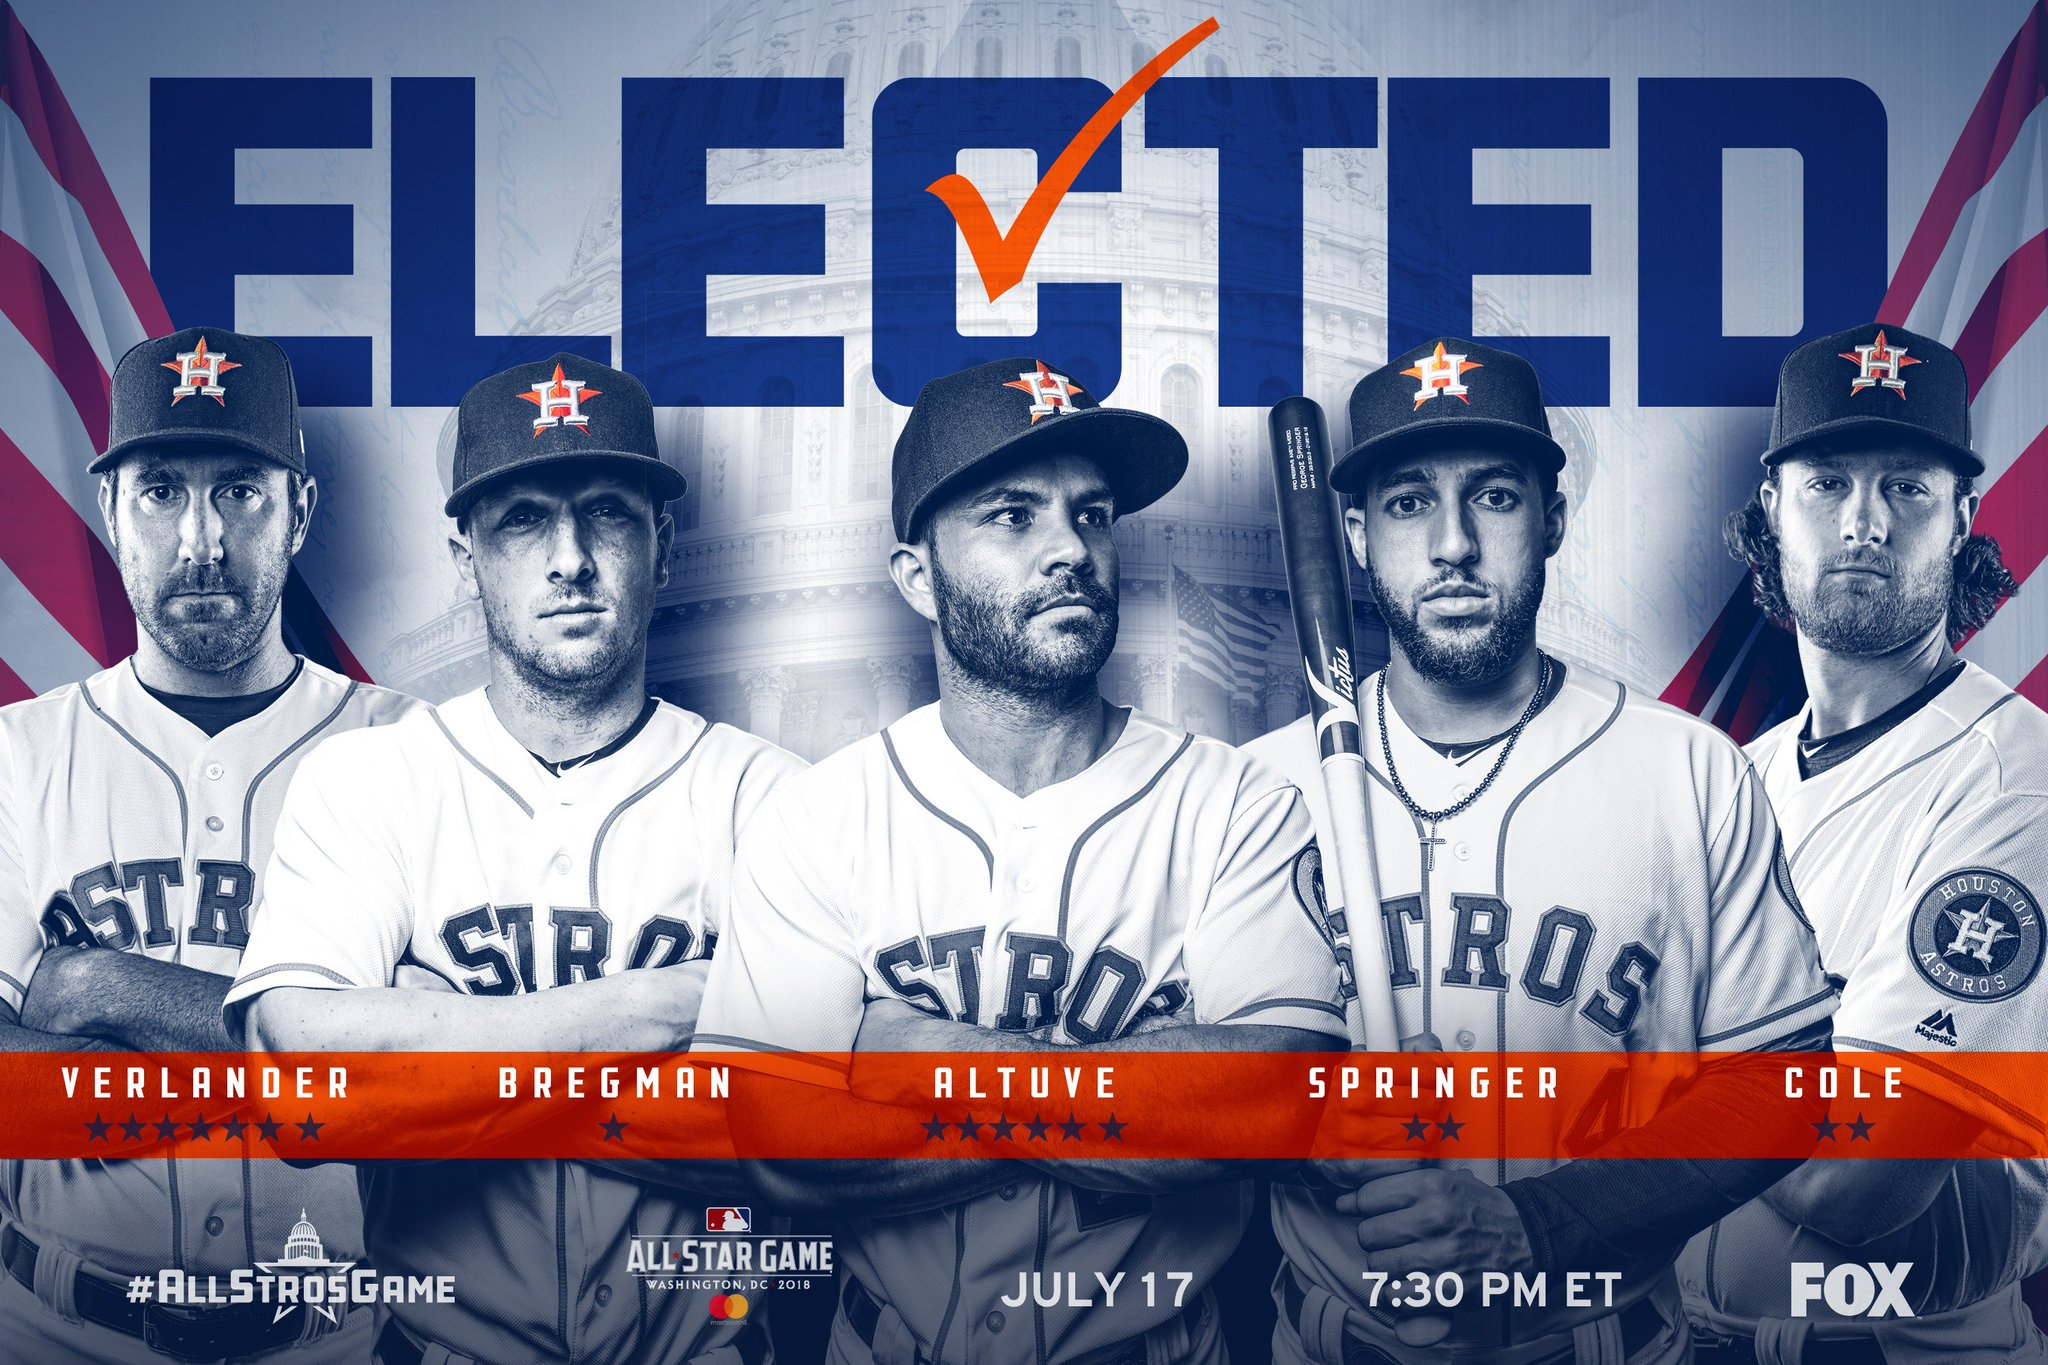 Your 2018 #Astros All-Stars! https://t.co/0bUpb2iBNb